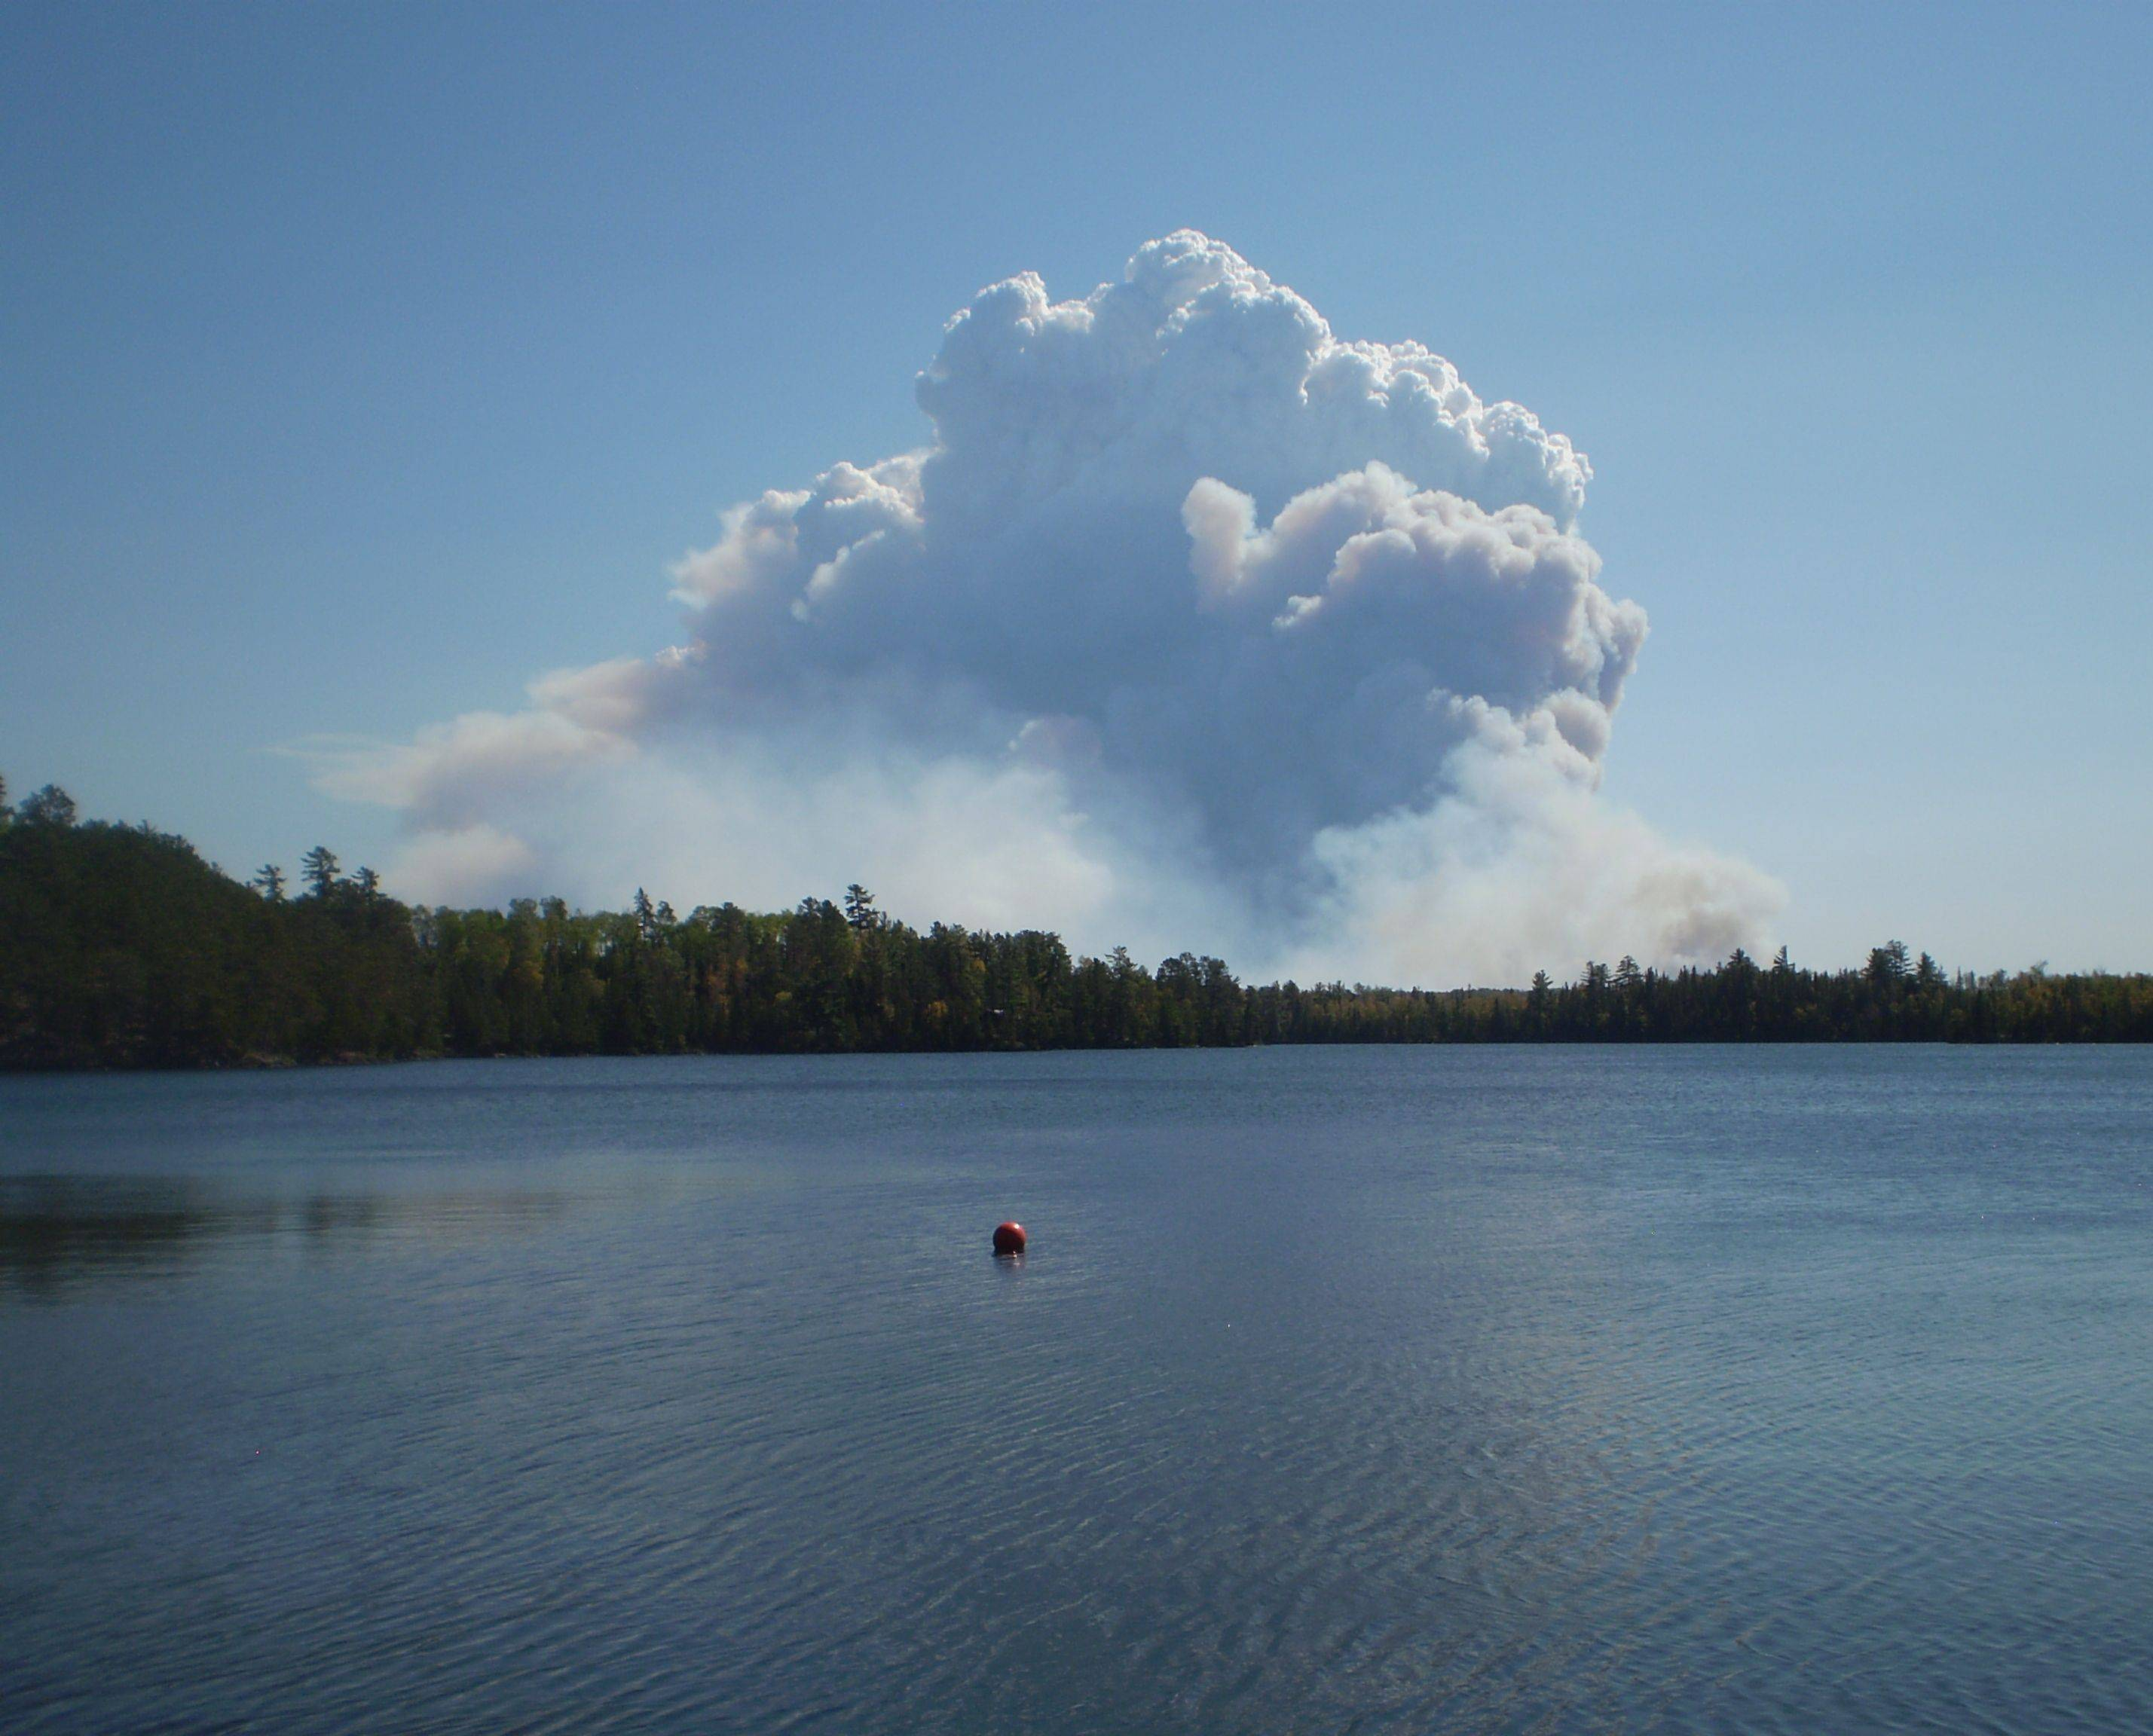 Smoke fills the sky from a fire outside the borders of the Boundary Waters Canoe Area near Ely, Minn., on Sunday. The Pagami Creek forest fire, estimated to cover as much as 60,000 acres in northeastern Minnesota, is blamed for a pall of smoke over the Chicago suburbs Tuesday.